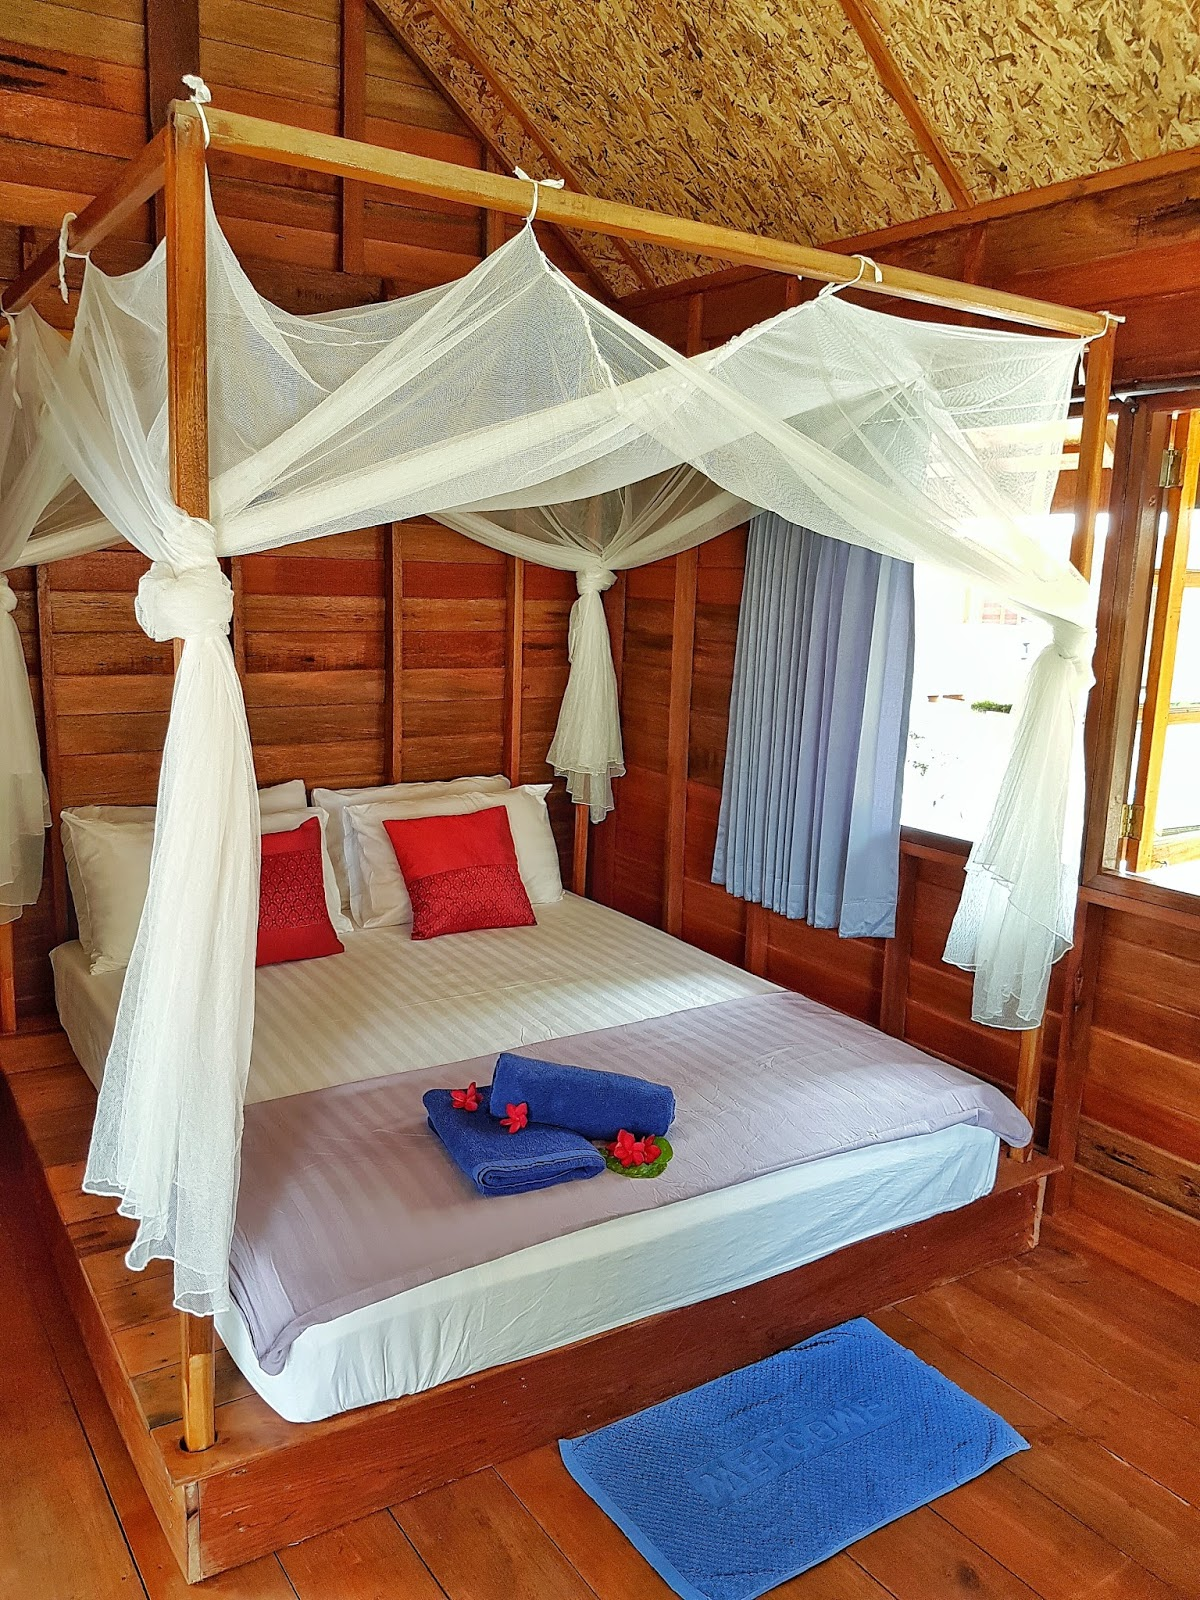 Bamboo garden rooms at lipe beach resort koh lipe - Since This Room Does Not Have Air Conditioning We Thought It Might Be A Good Idea To Put In A Lot Of Windows With Its Four Poster Double Bed And Mosquito